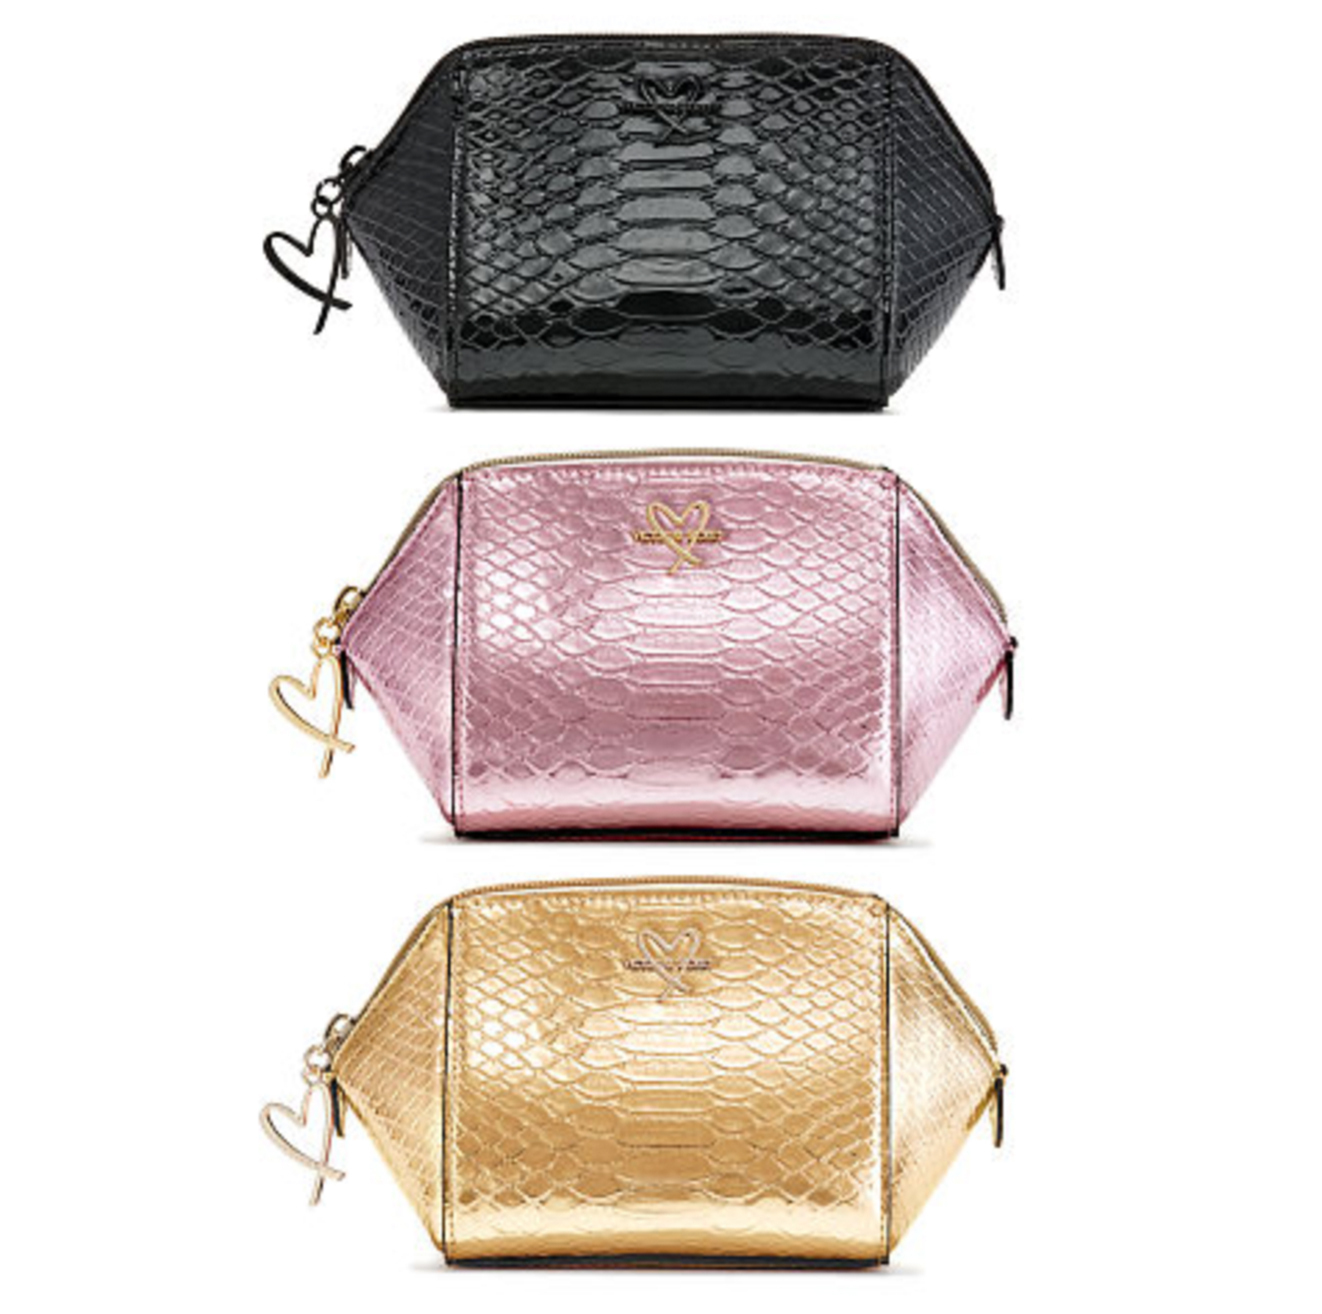 Luxe Python On-The-Go Beauty Bag